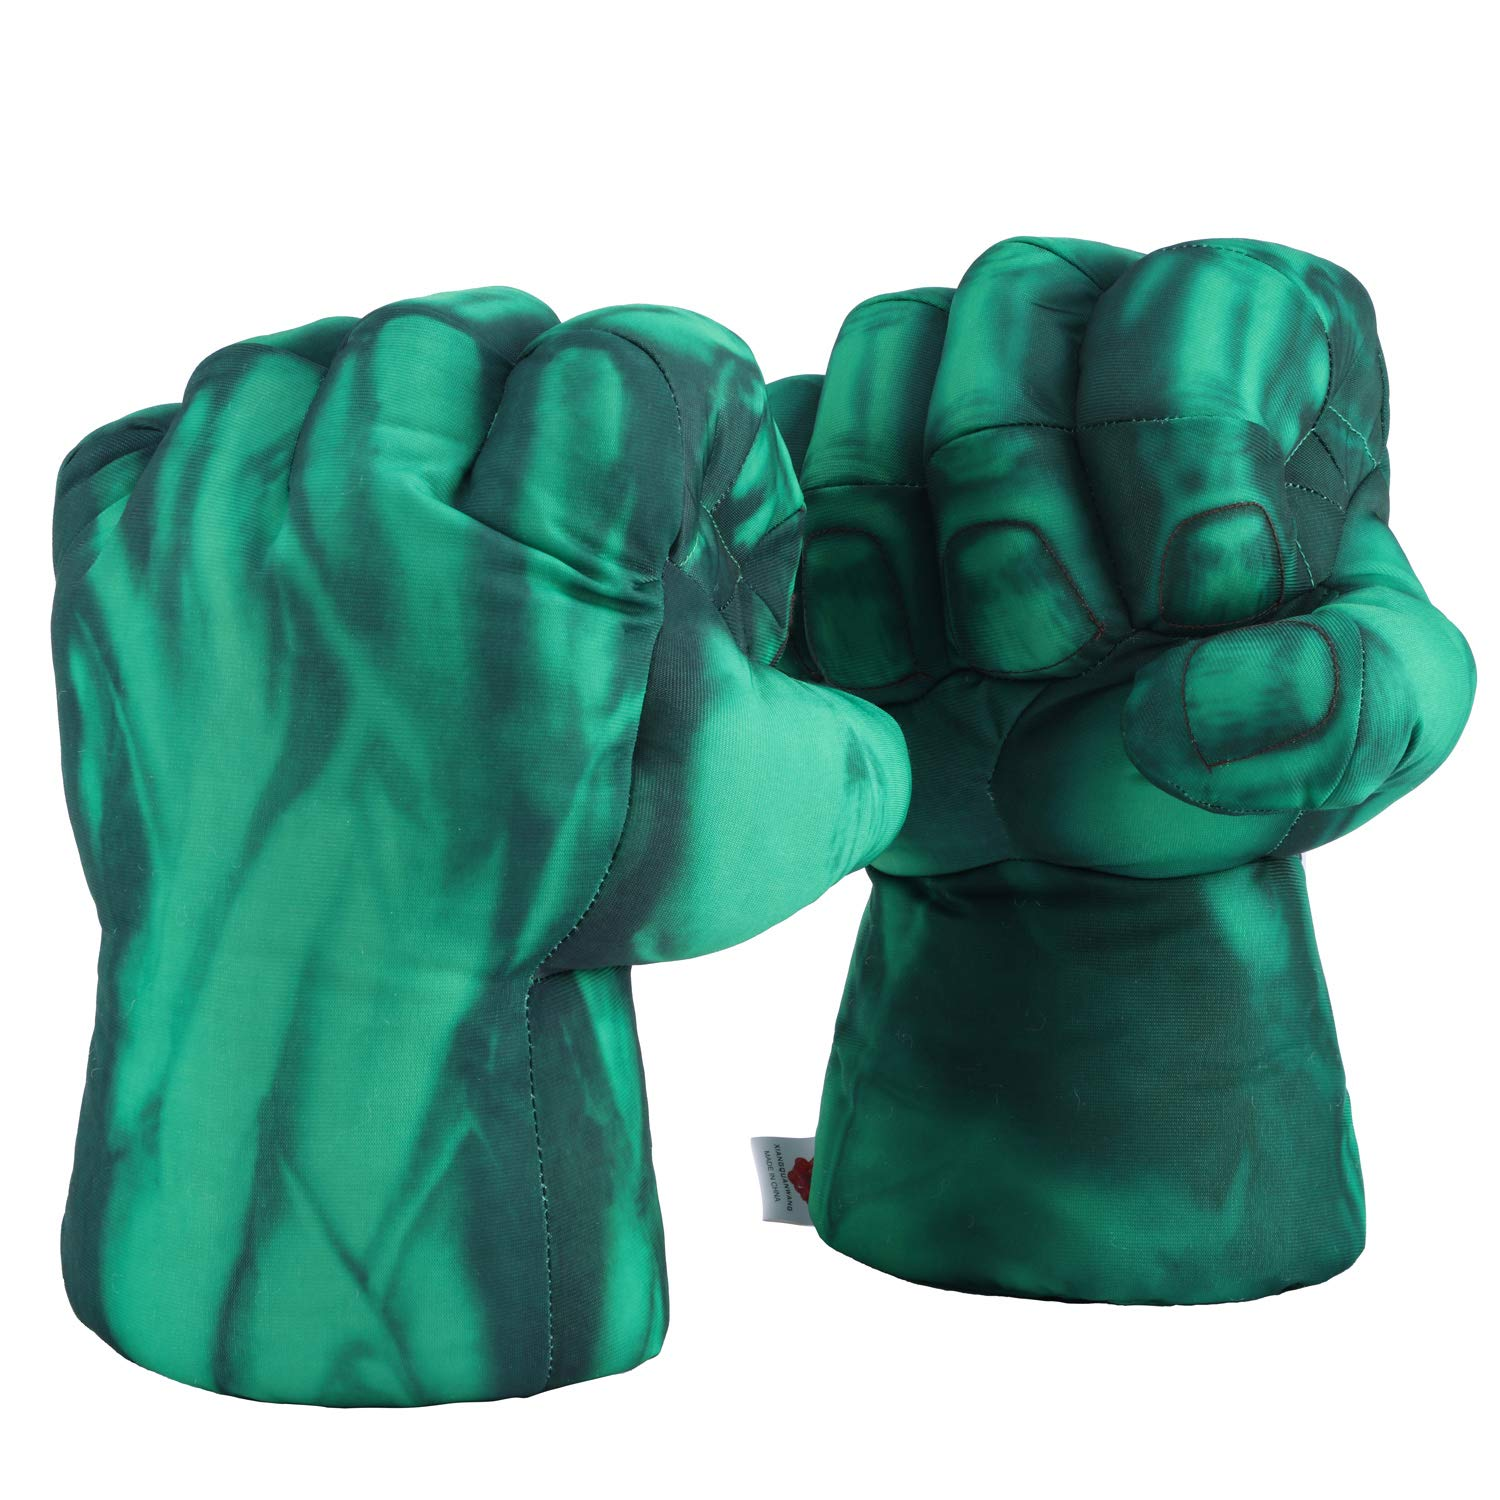 Toyart Smash Hands for Kids of All Ages|Plush Stuffed Gloves Toys, Incredible Fists Work for Green Mask, Costume for Child, Boys|Green Addition to St Patricks Day Shirt|1 Pair